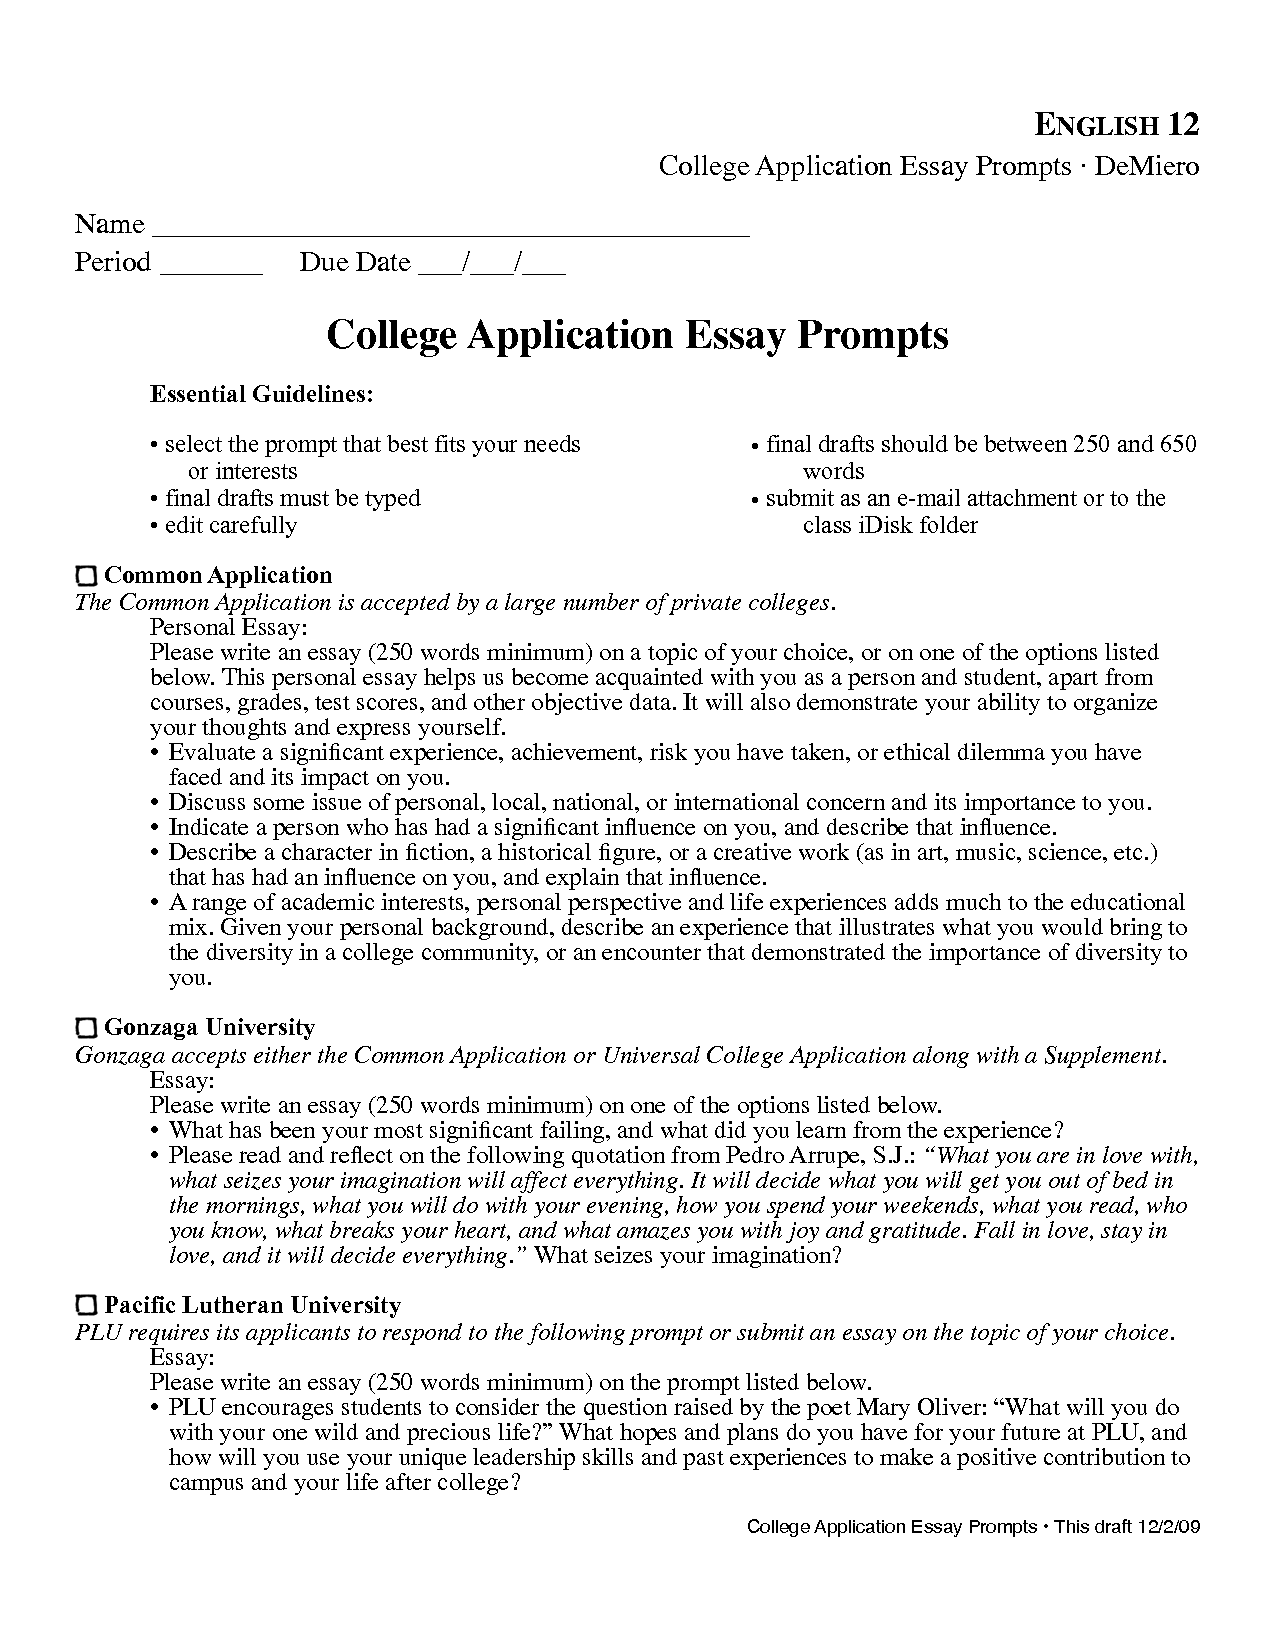 001 Using Quotes In College Essays Quotesgram Examples Of Essay Prompts L Example Unique For Writing Esl Students Argumentative Expository Full